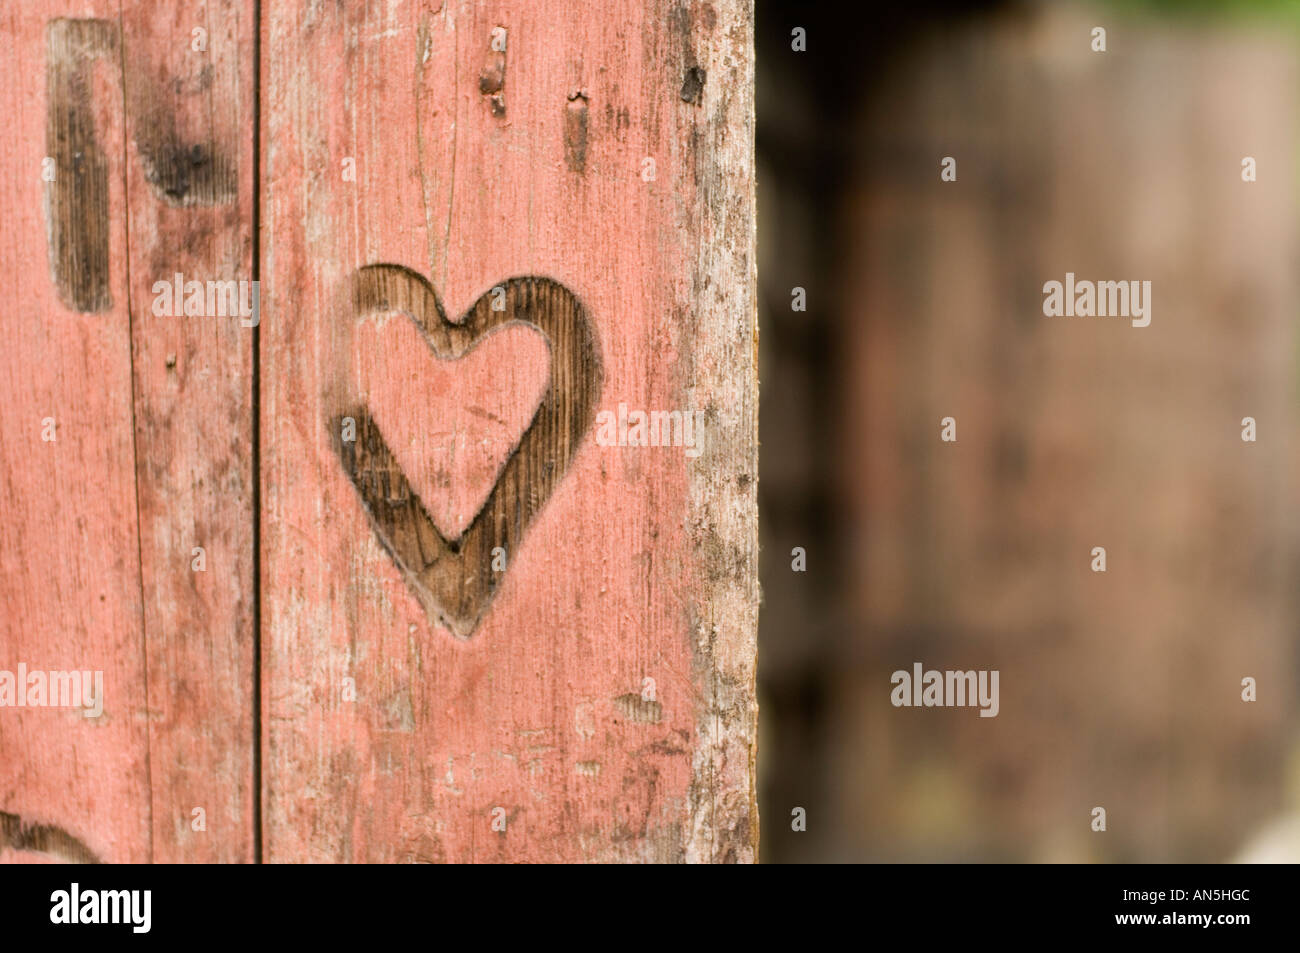 a Heart mark burnt branded scorched into the wooden shutters on old blacksmith's shop Penybont Powys wales UK - Stock Image